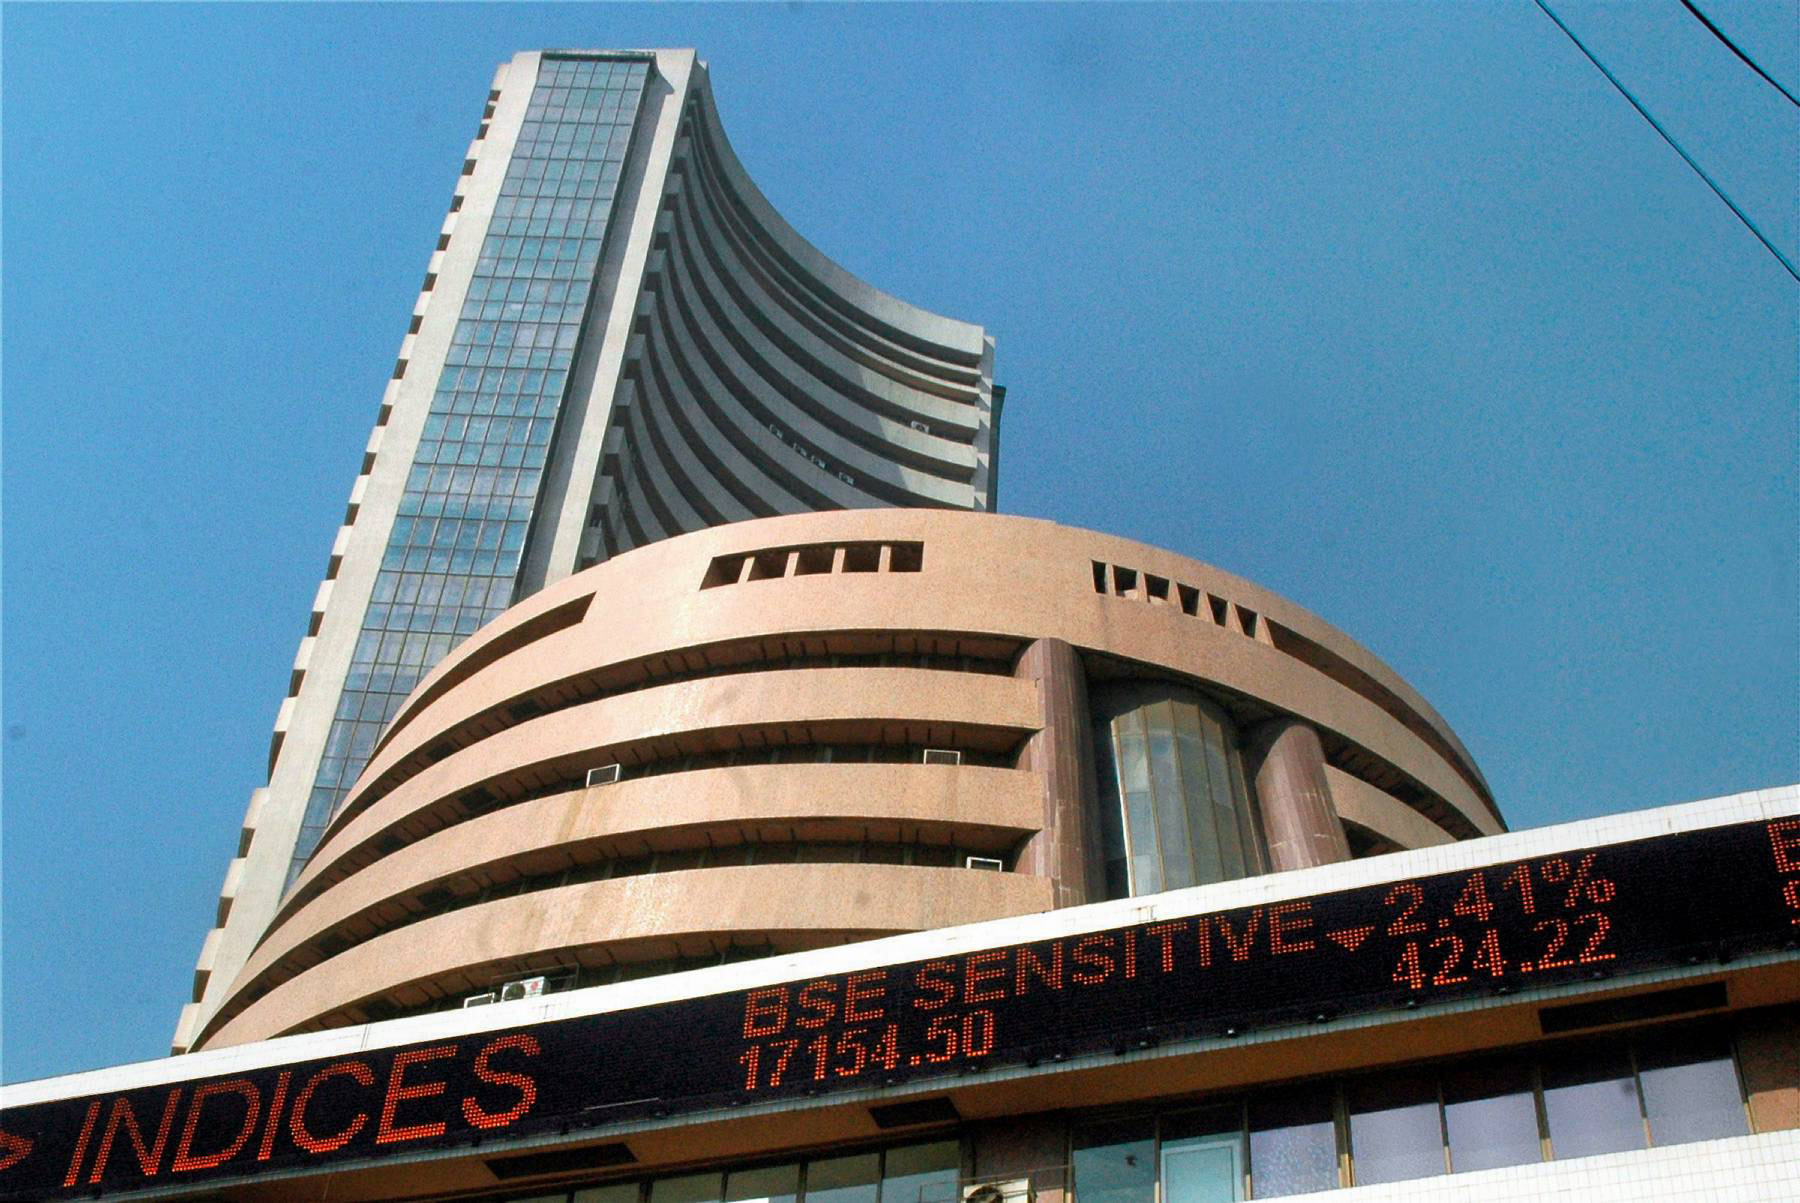 26408.74, 81 points, BSE Sensex, Sensex today, morning sensex